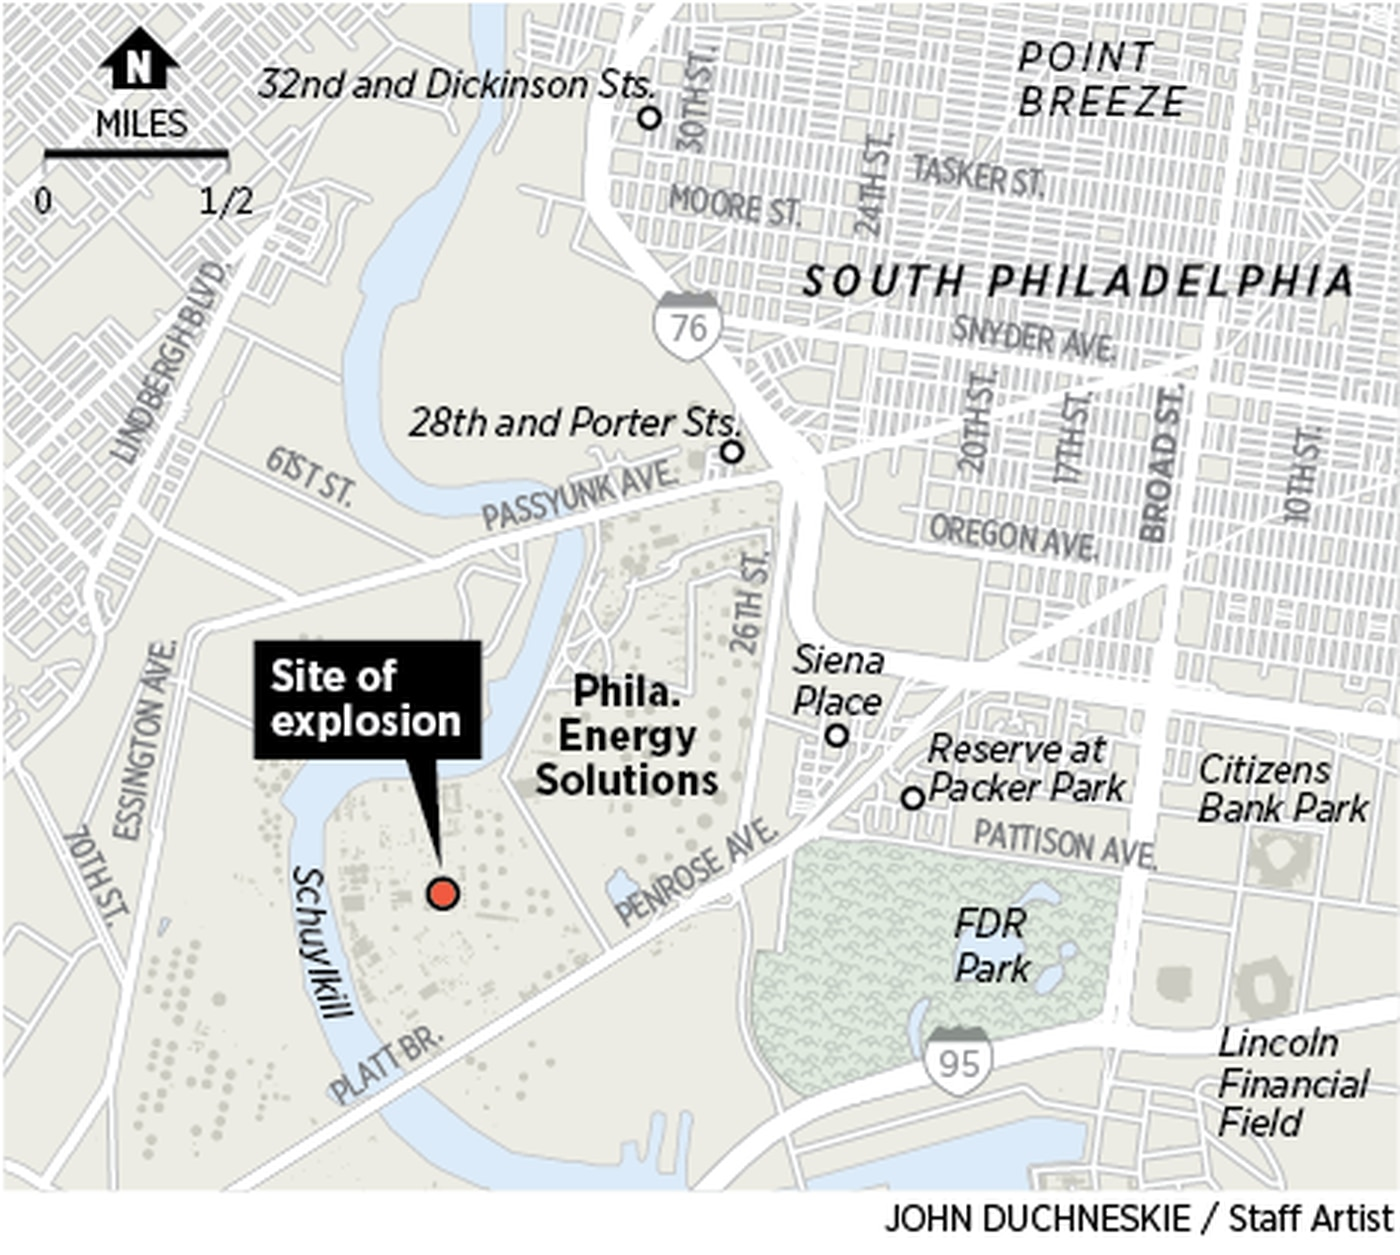 Updated locator map of the refinery explosion on June 21, 2019, at the Philadelphia Energy Solutions refinery in South Philadelphia